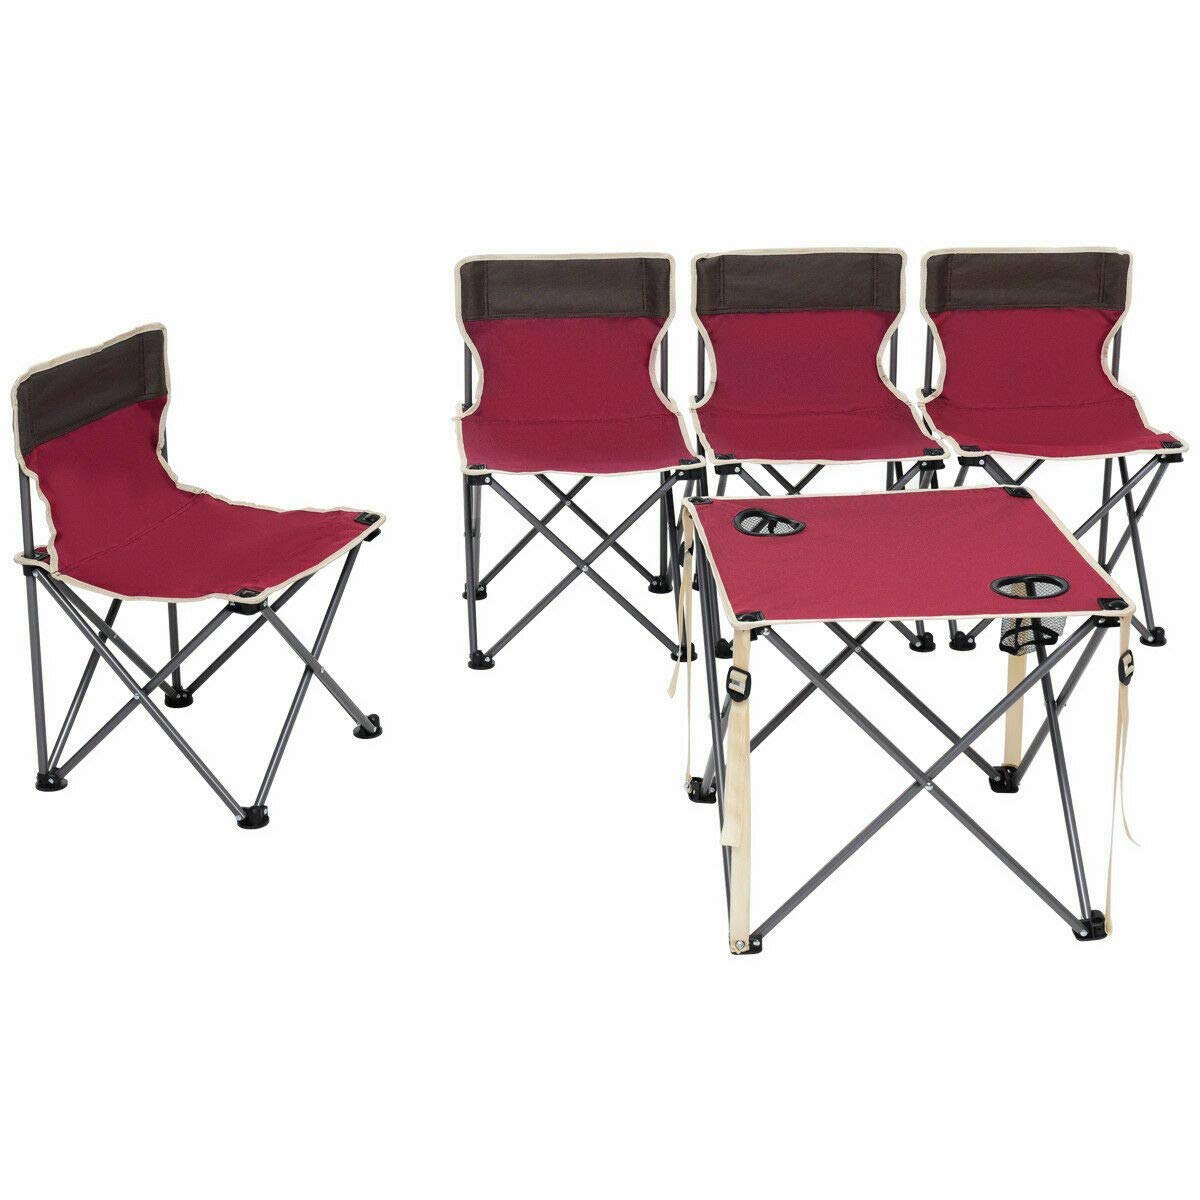 ANA Store Vacations Cookout Party Curl Stand Metal Iron Stell Frame Red Oxford Fabric Portable Folding Table Chairs Set Inside Outside Camp Beach Picnic with Carrying Bag by ANA Store (Image #5)